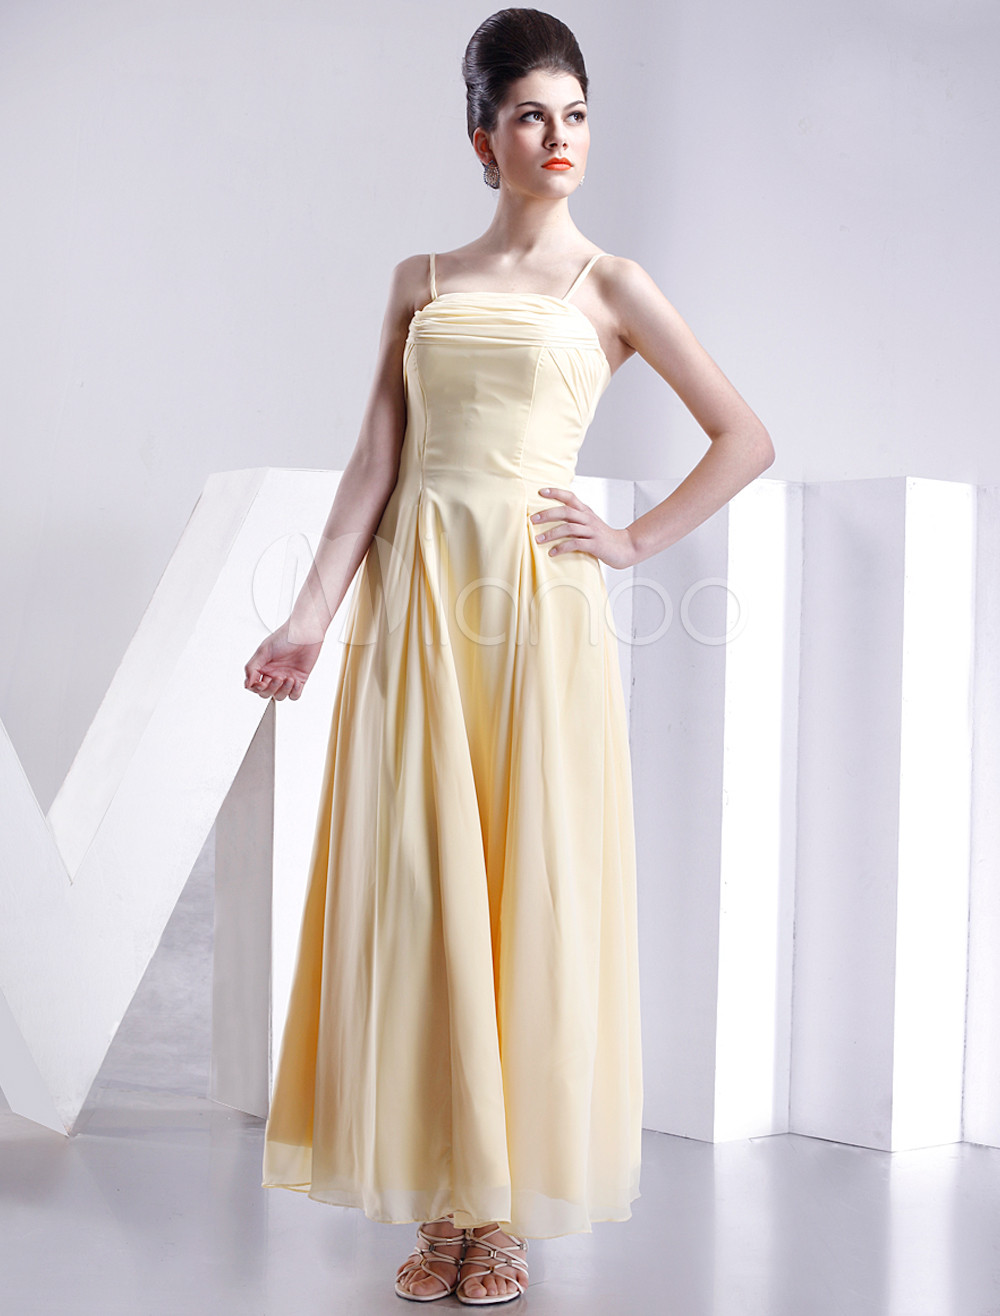 Sheath Spaghetti Straps Daffodil Satin Bridesmaid Dress